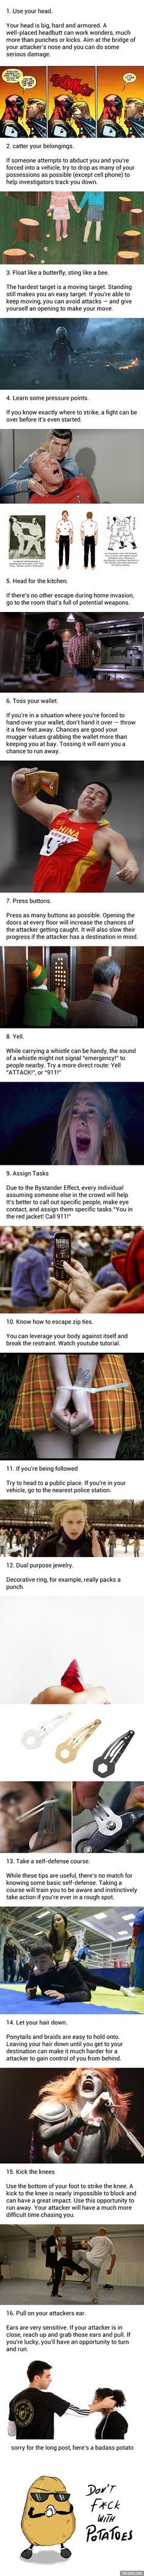 Self defense - 16 Tips to Save Your Life Survival Life Hacks, Survival Tips, Survival Skills, Life Advice, Good Advice, By Any Means Necessary, The More You Know, Useful Life Hacks, Life Savers